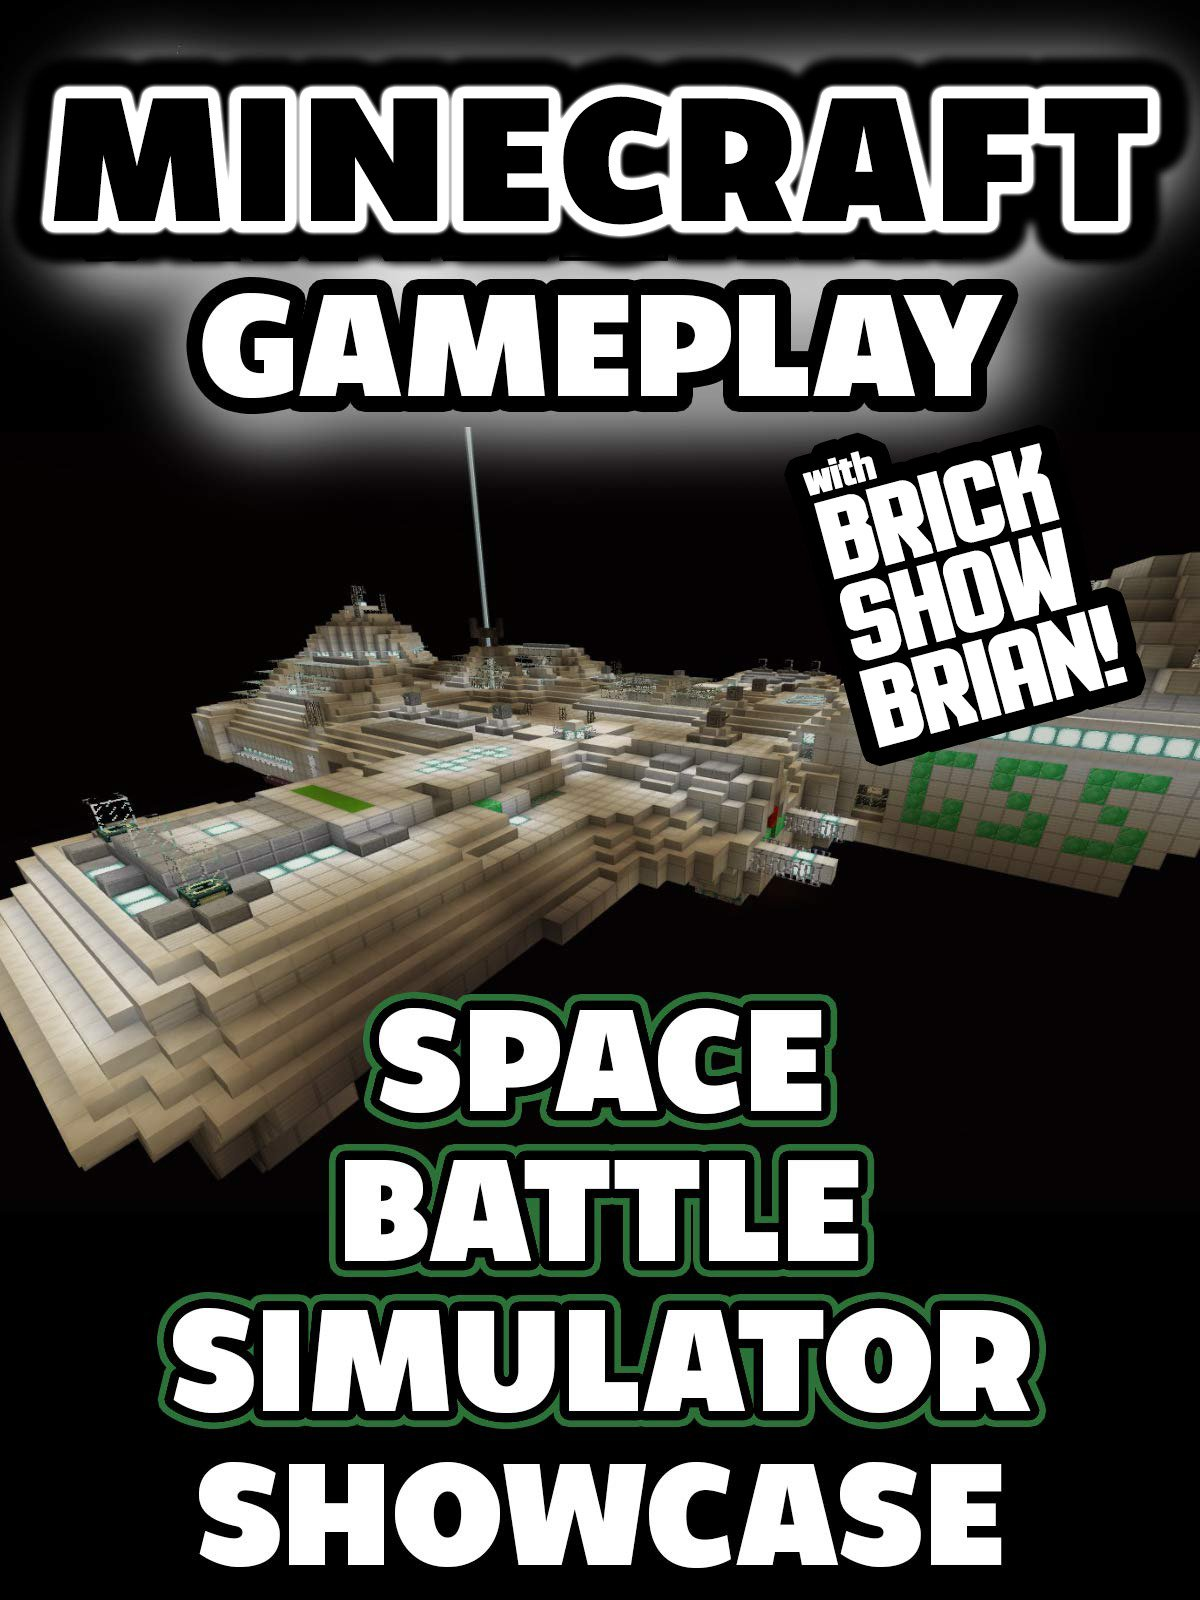 Clip: Minecraft Gameplay with Brick Show Brian! Space Battle Simulator Showcase